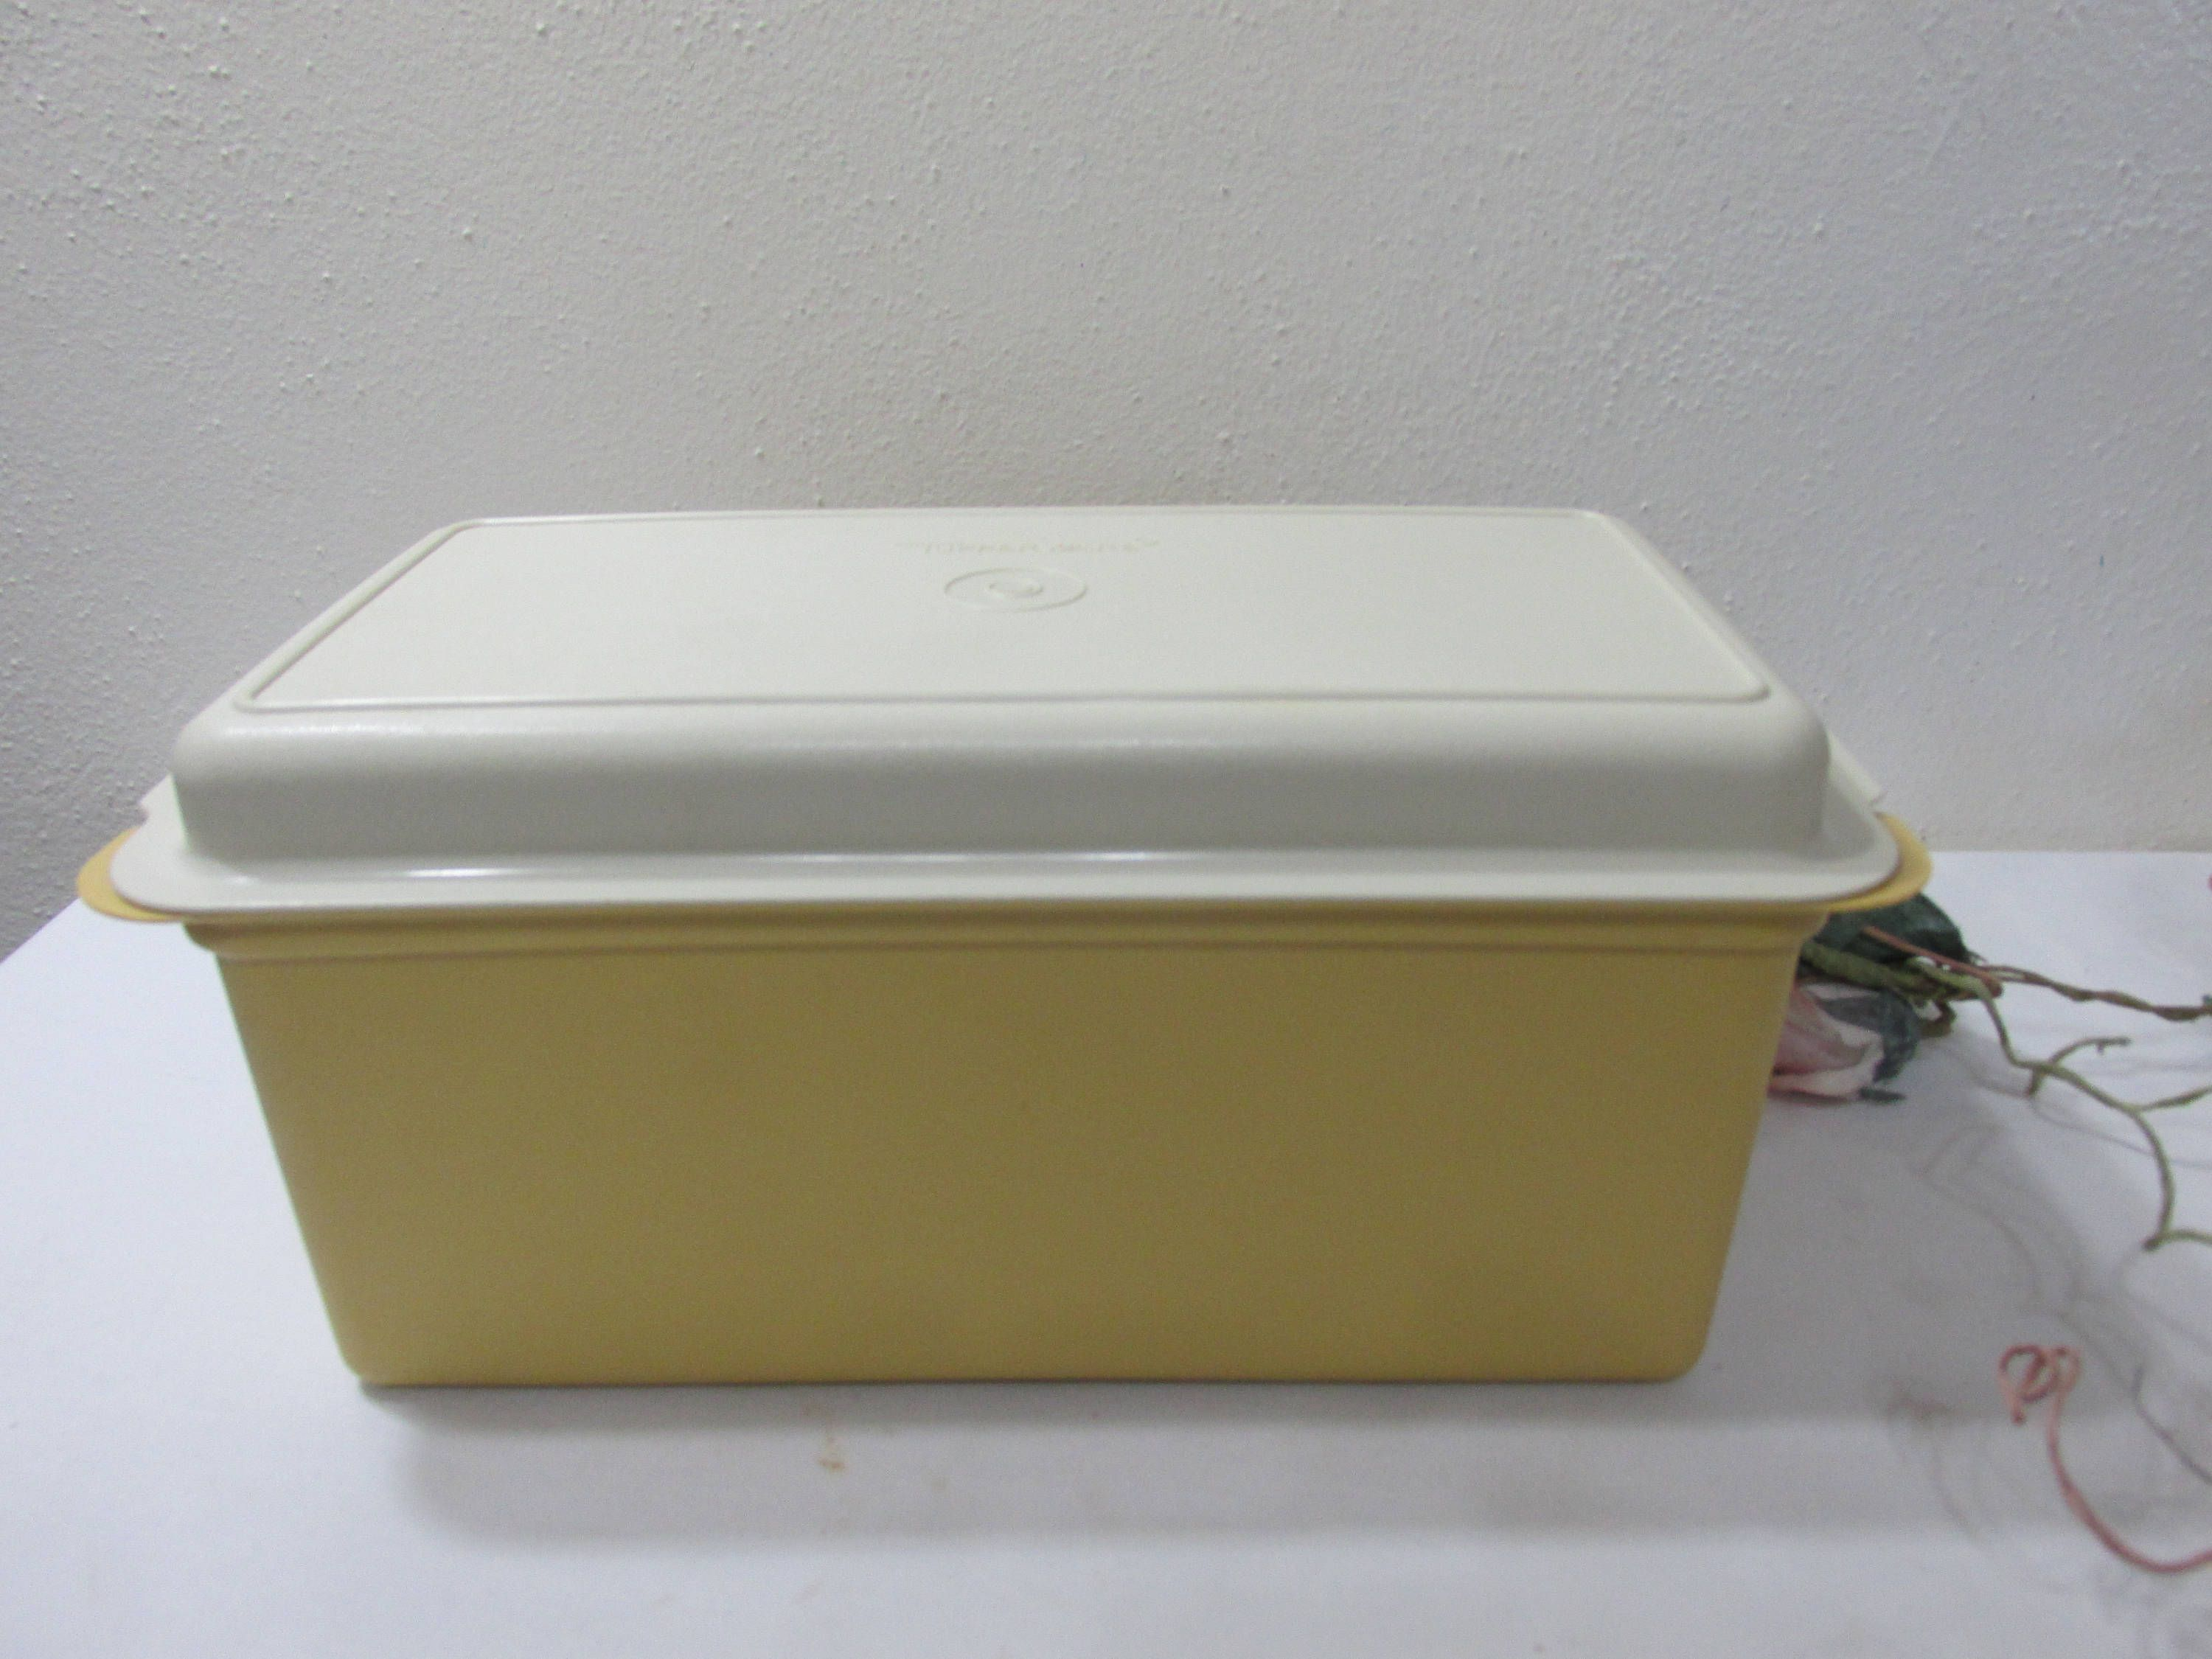 Tupperware Bread Box Cracker Keeper Harvest Gold with Ivory Lid by LuRuUniques on Etsy & Tupperware Bread Box Cracker Keeper Harvest Gold with Ivory Lid by ... Aboutintivar.Com